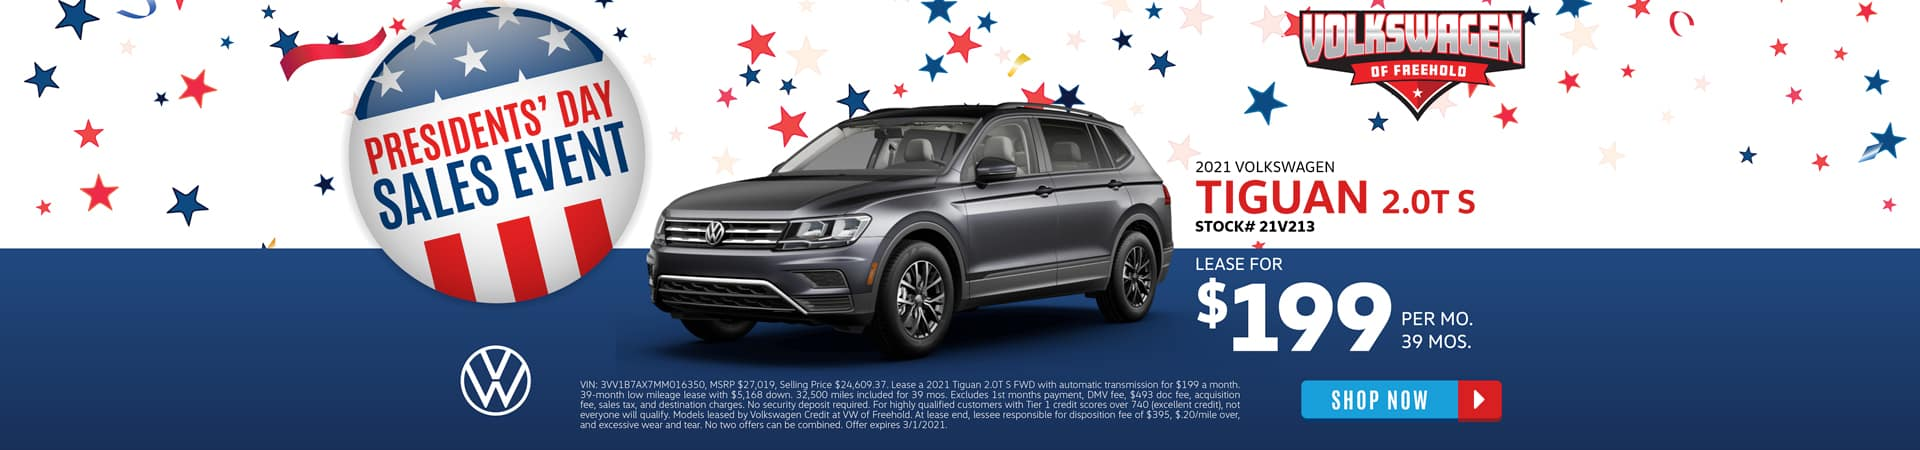 2021.01.29-VW-of-Freehold-Feb-Web-Banners-1-S50690cr_03